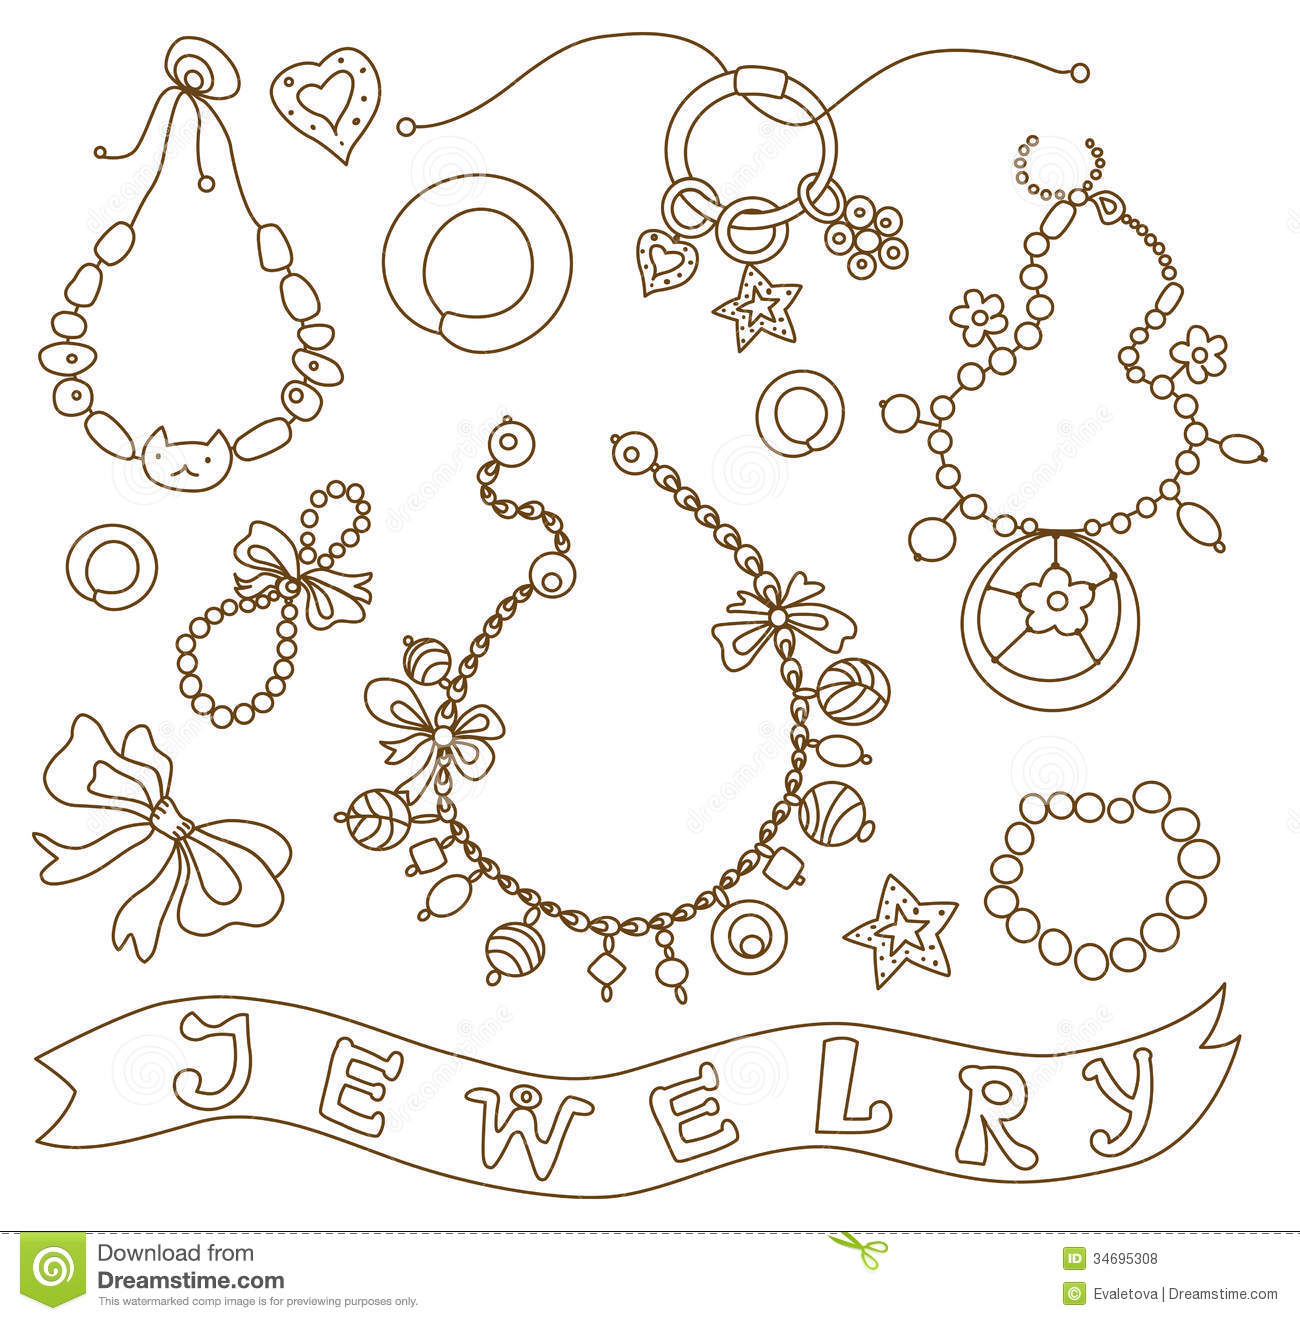 Bracelet coloring pages